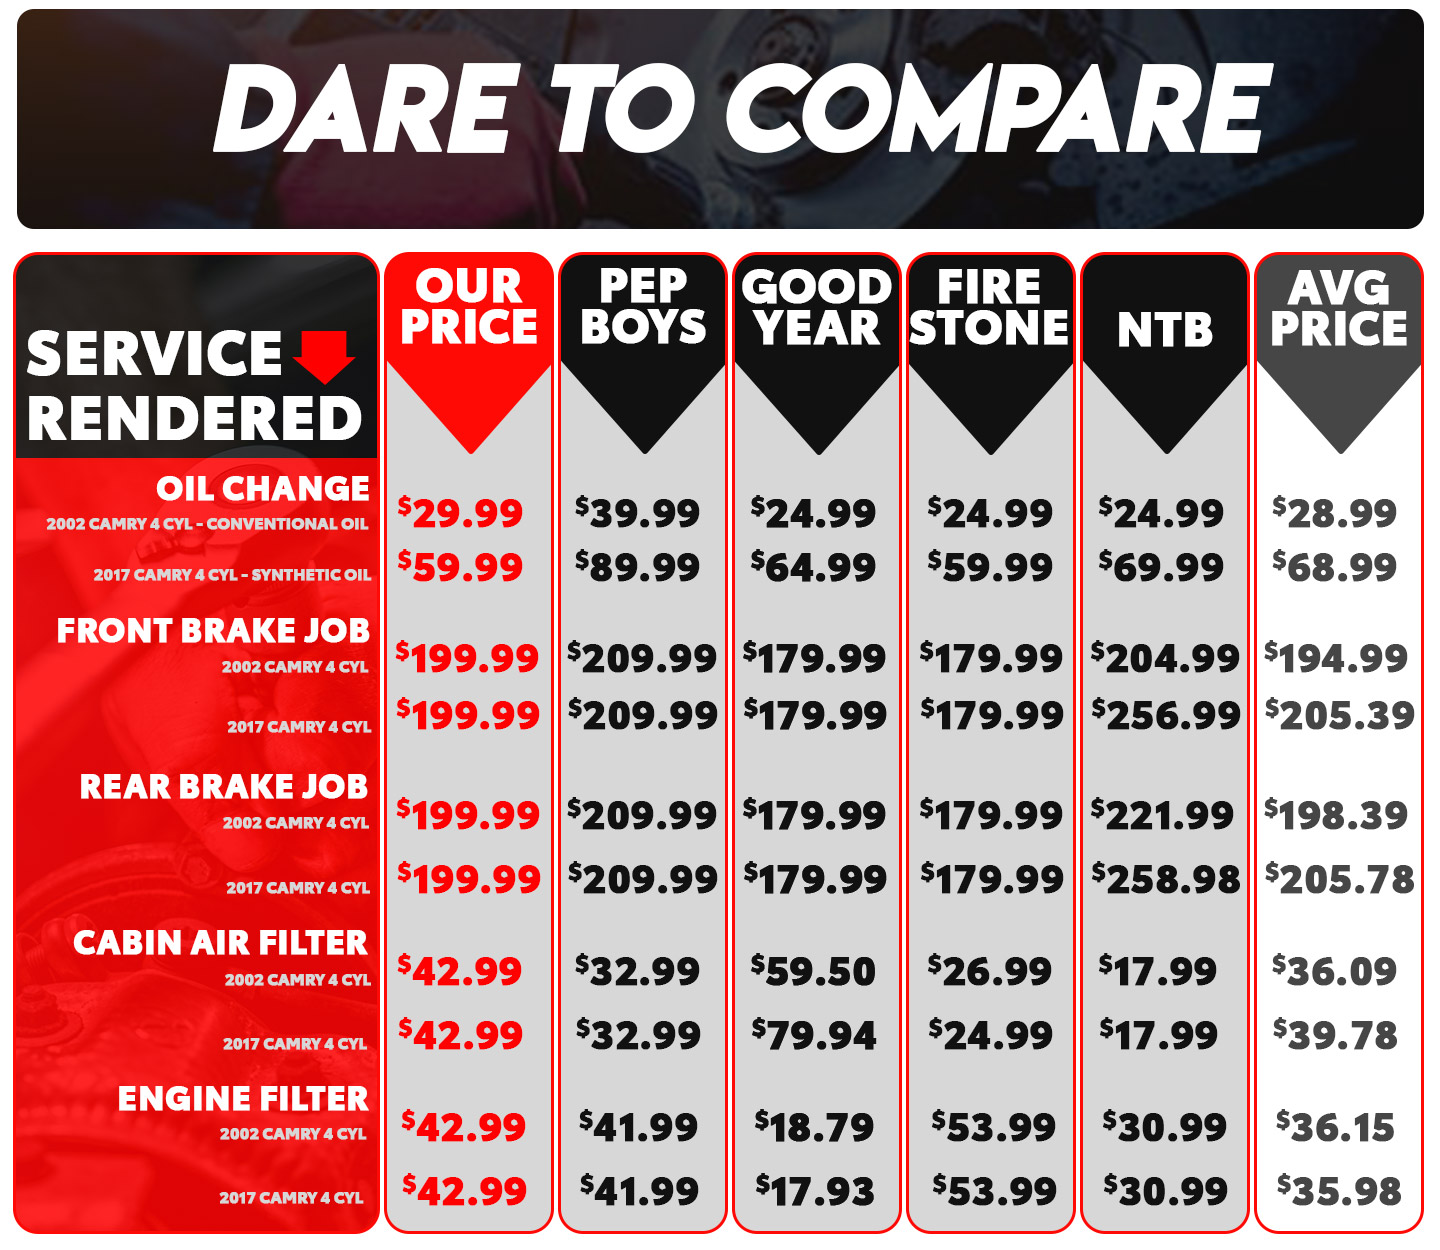 Toyota of Slidell Dare To Compare